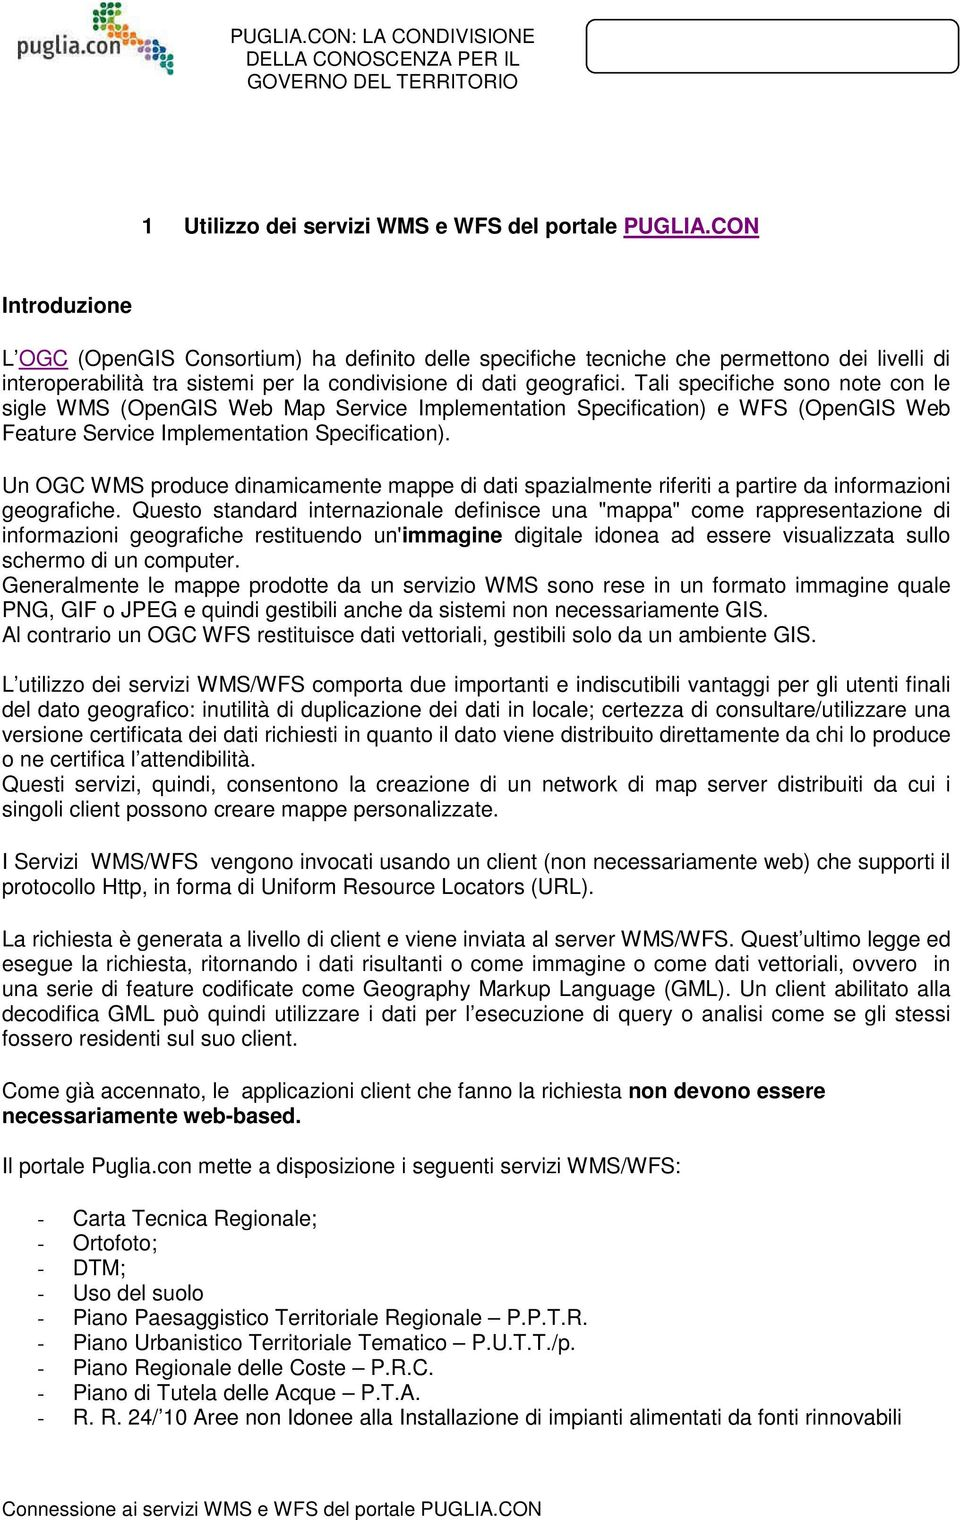 Tali specifiche sono note con le sigle WMS (OpenGIS Web Map Service Implementation Specification) e WFS (OpenGIS Web Feature Service Implementation Specification).